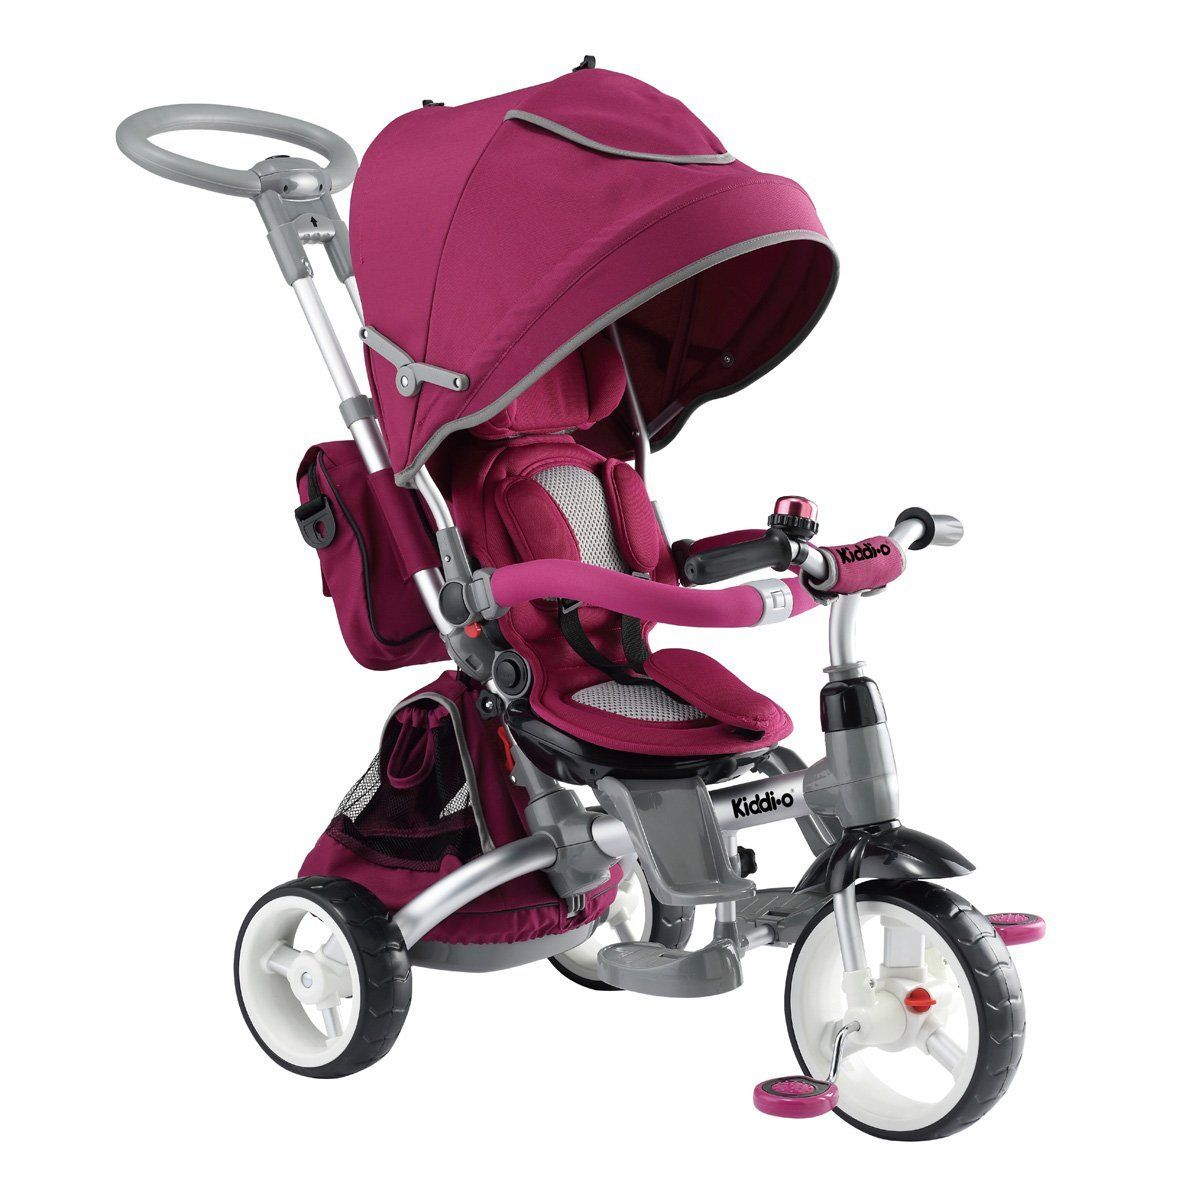 Kettler Kids Comfort Kettler 6 In 1 Multi Trike Tricycle Baby Gear Baby Strollers